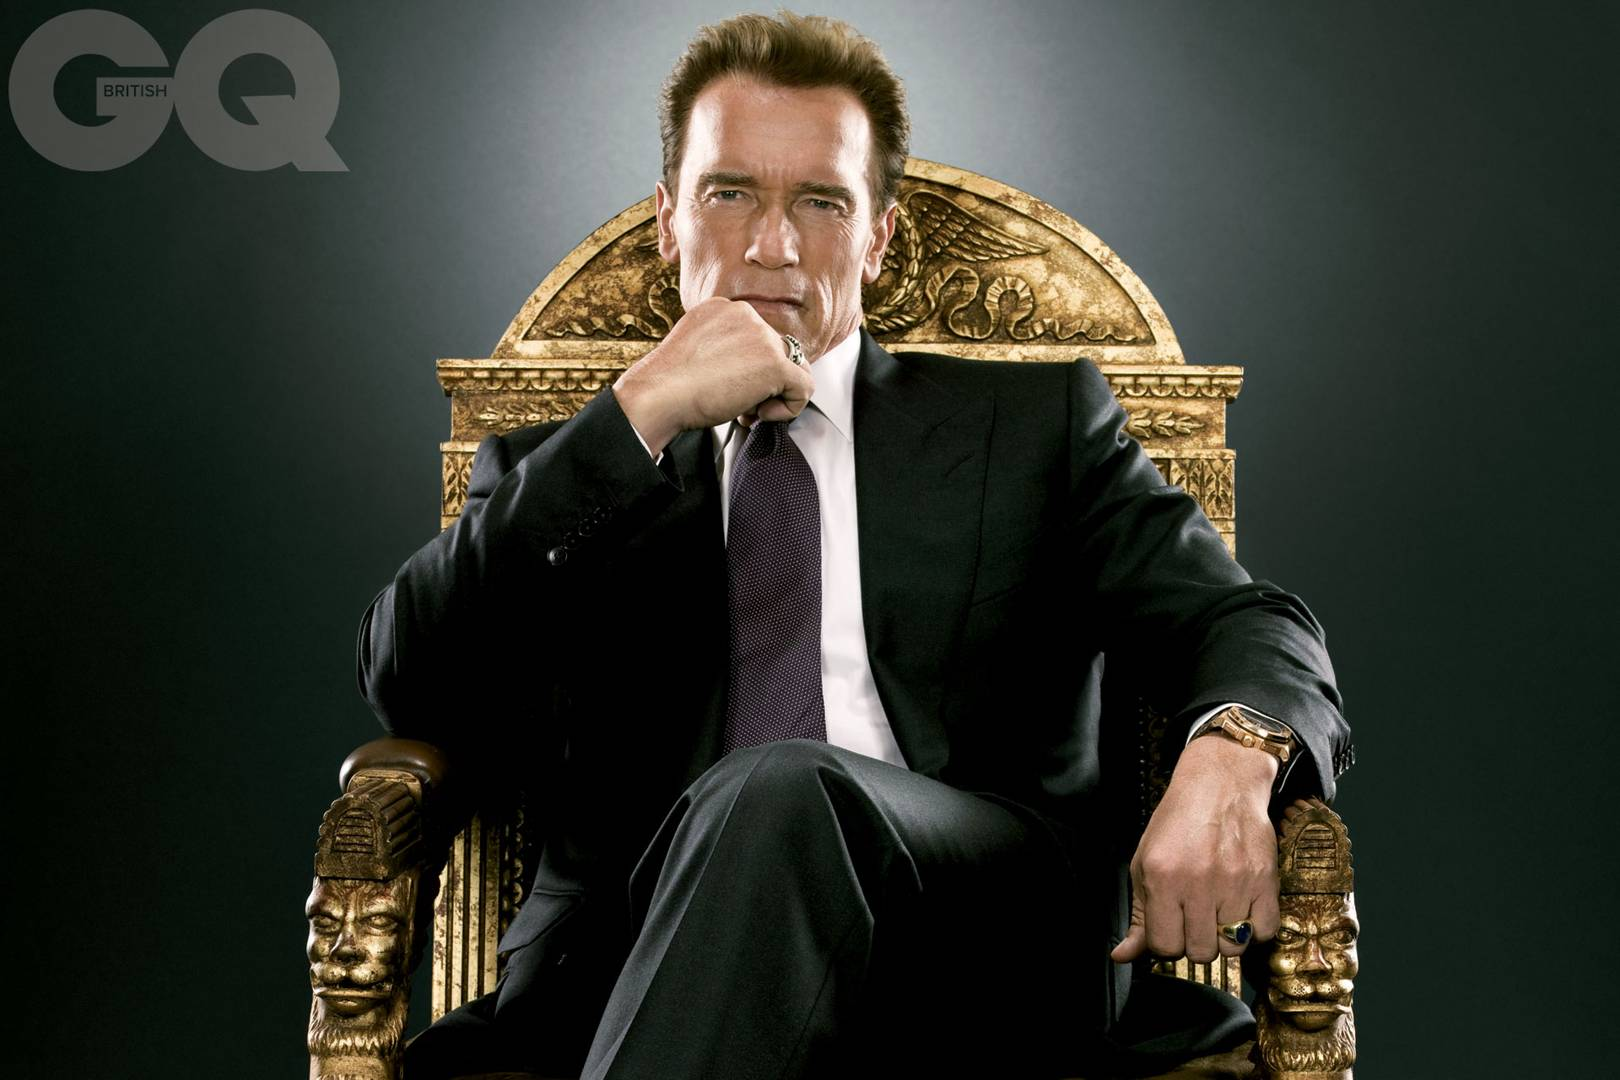 Arnold Schwarzenegger On The Possibility Of His Presidency And Tony